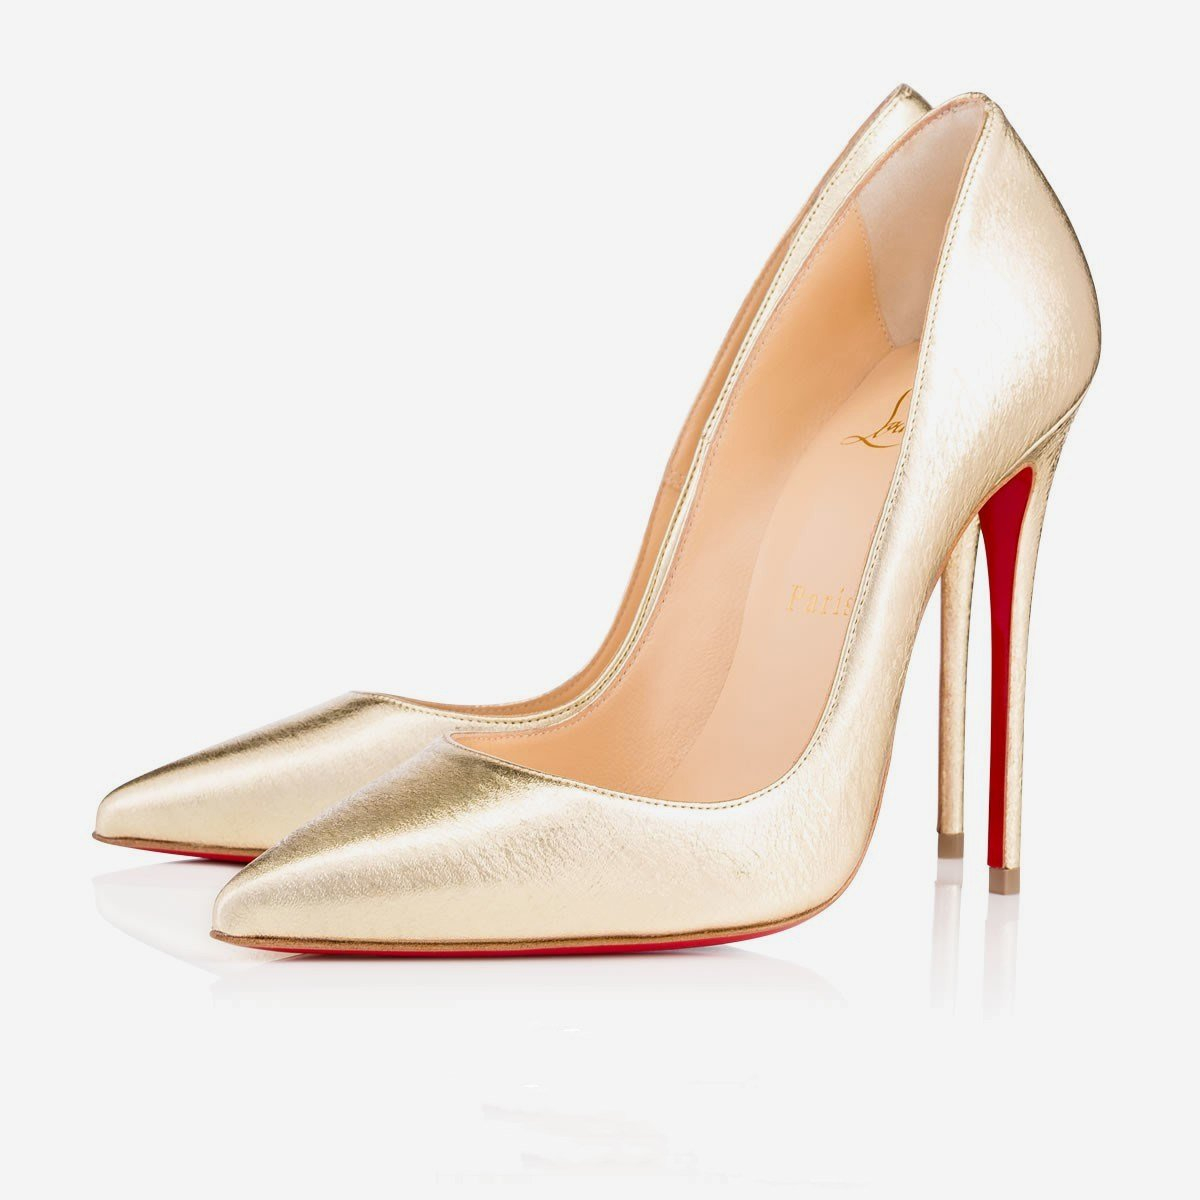 Image of Christian Louboutin New pointed high heels